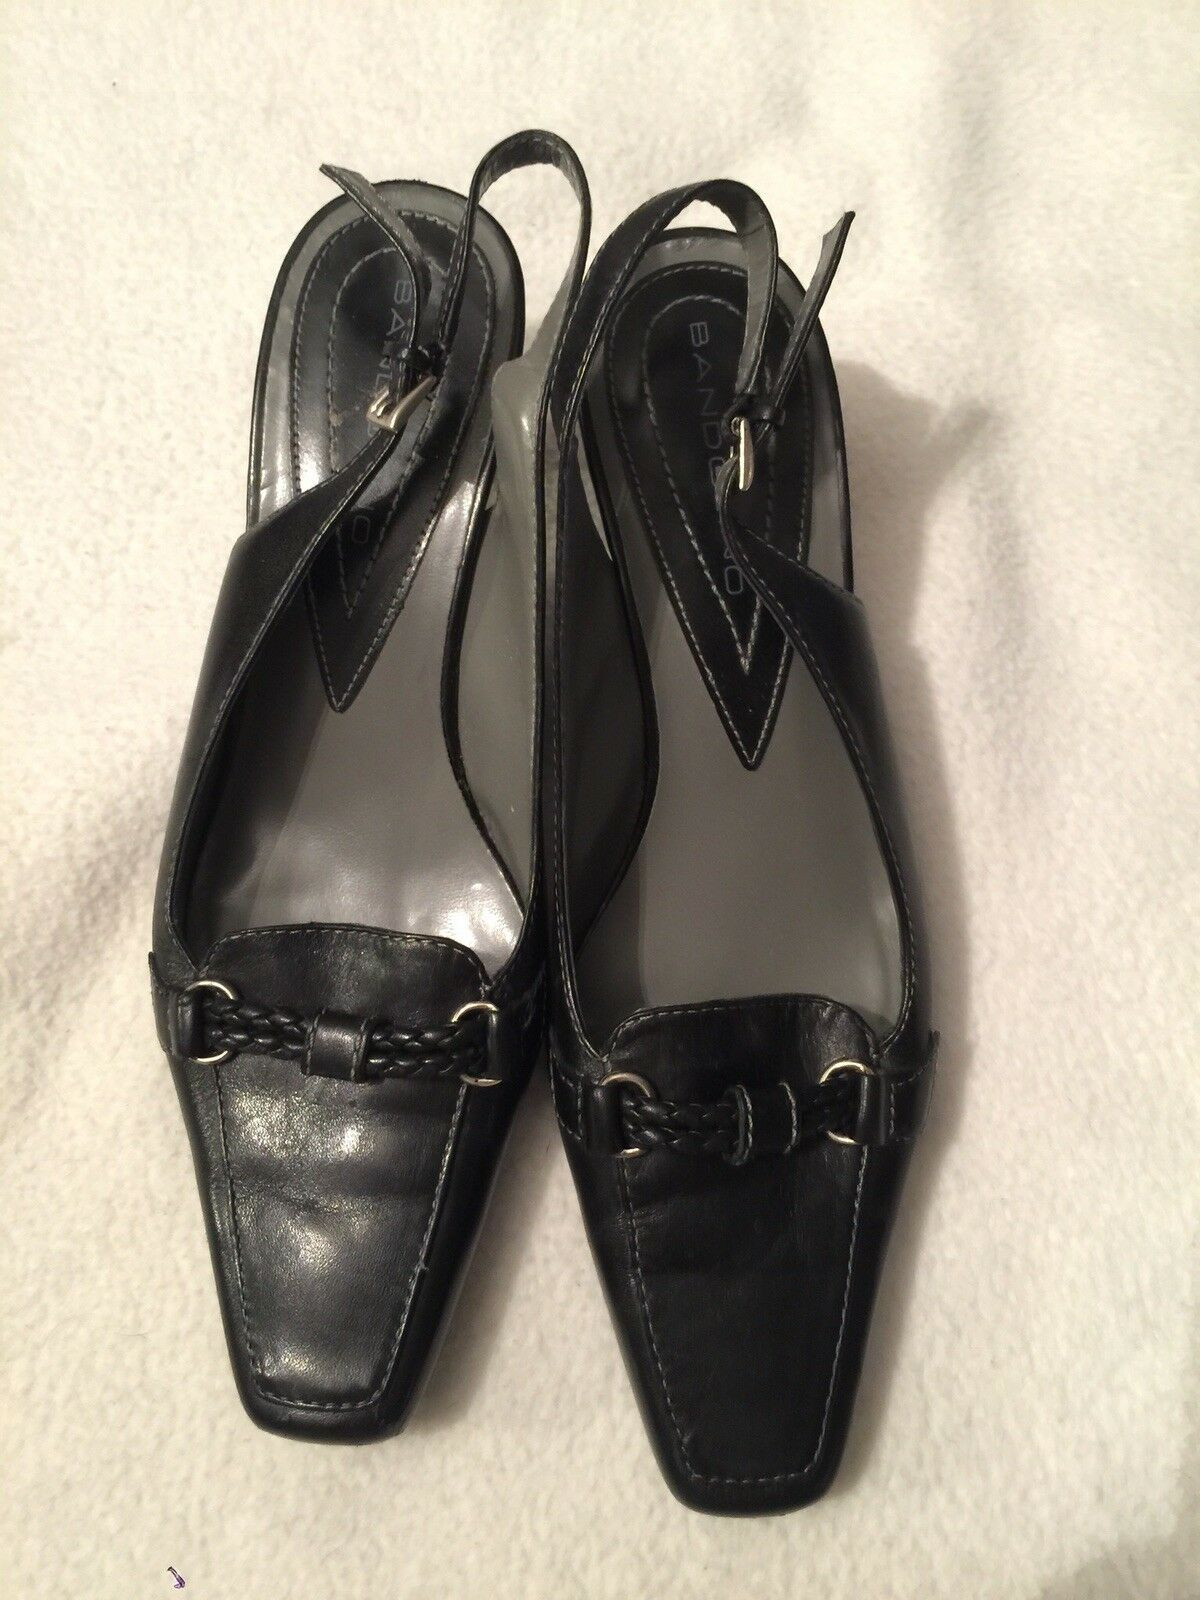 Ladies Bandolino Black Size Sling Back Pumps Heels Size Black 7M Used Condition 01ed27